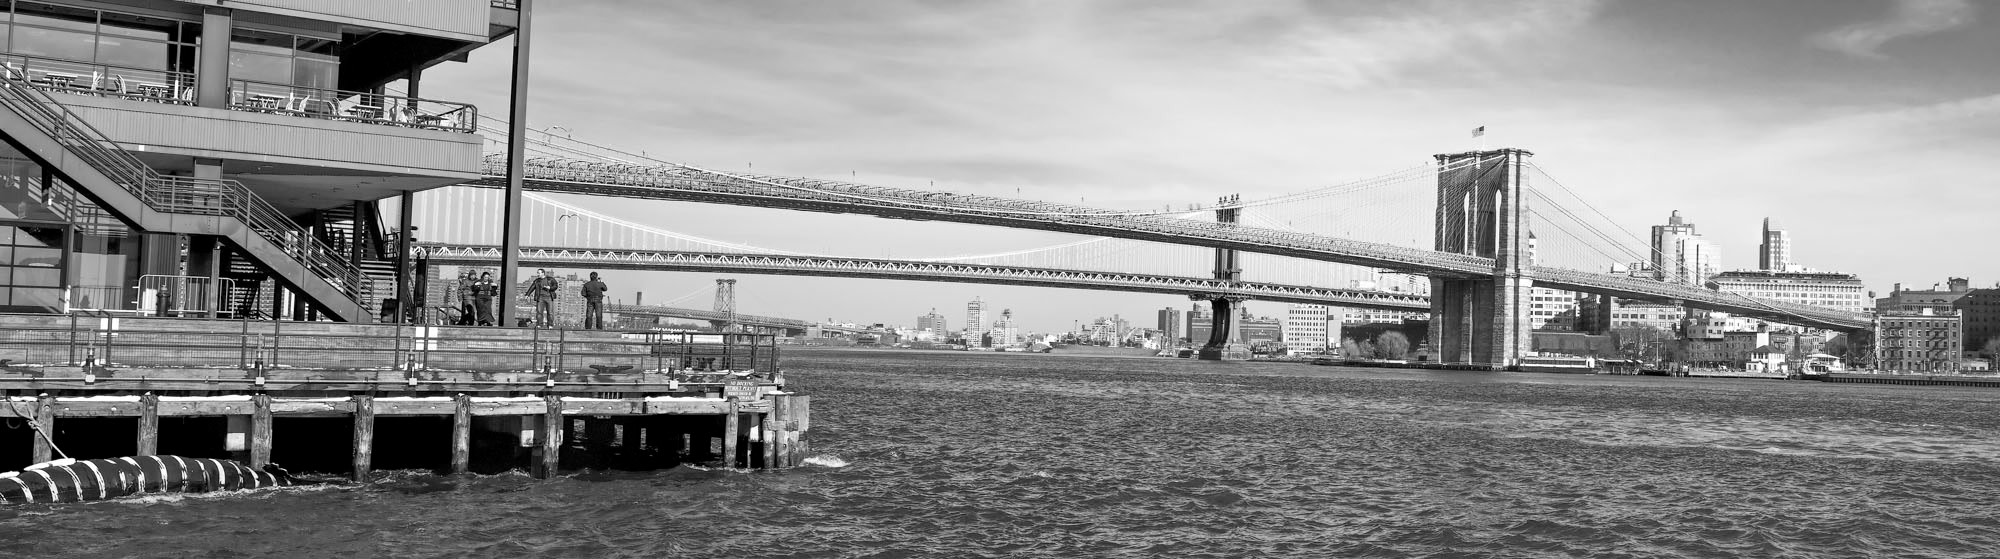 <div class='title'>           brooklyn bridge pano 24x7 bw         </div>